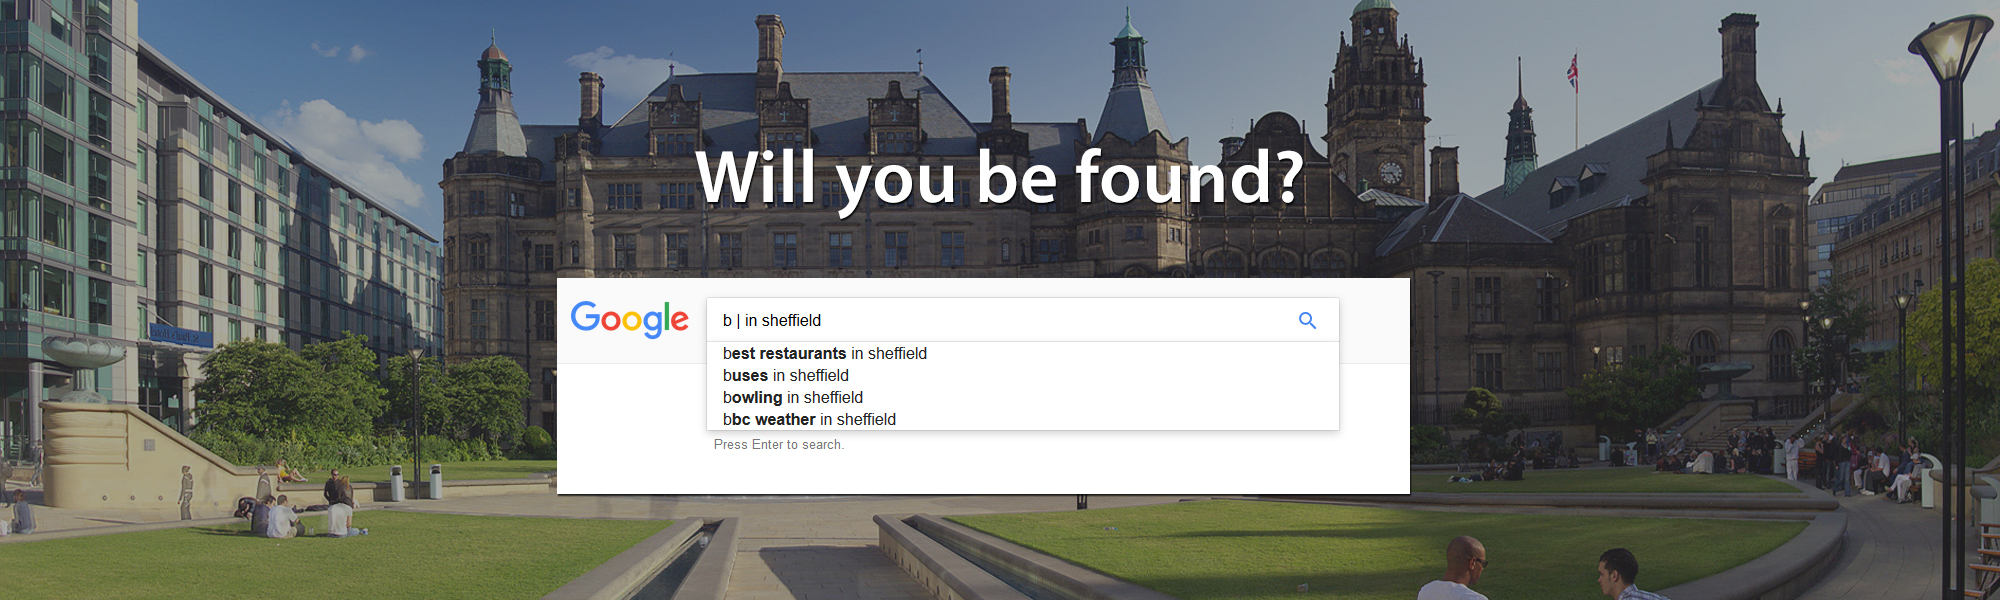 Will your business be found on Google?